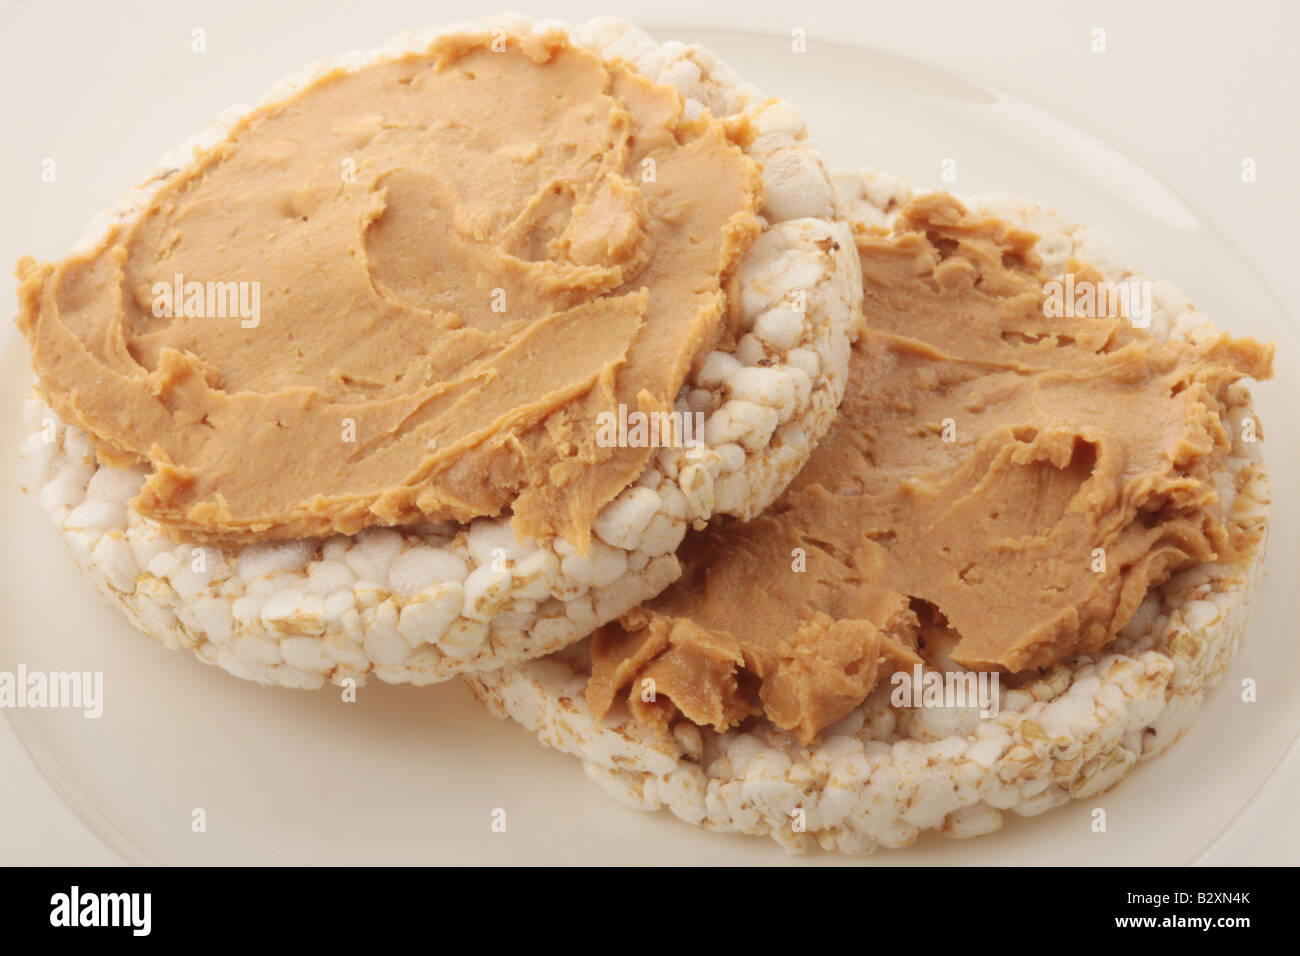 Rice Cakes With Peanut Butter Stock Photo, Royalty Free ...